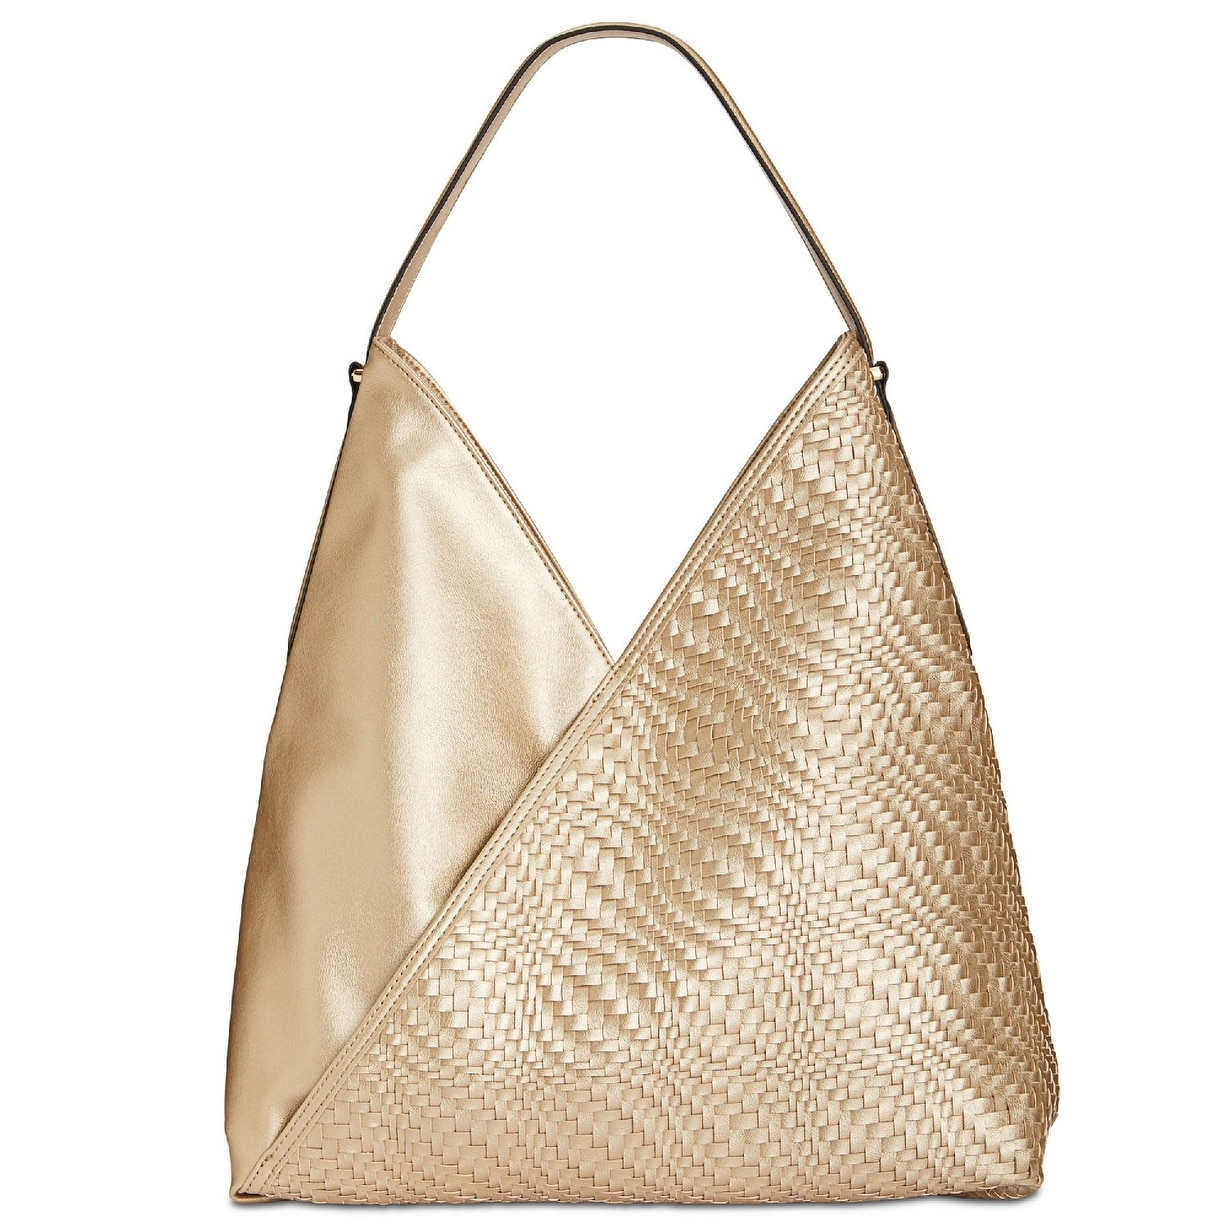 9c90be0c4c4a Shop INC International Concepts Blakke Woven Large Hobo Bag Gold - Free  Shipping Today - Overstock - 25966255